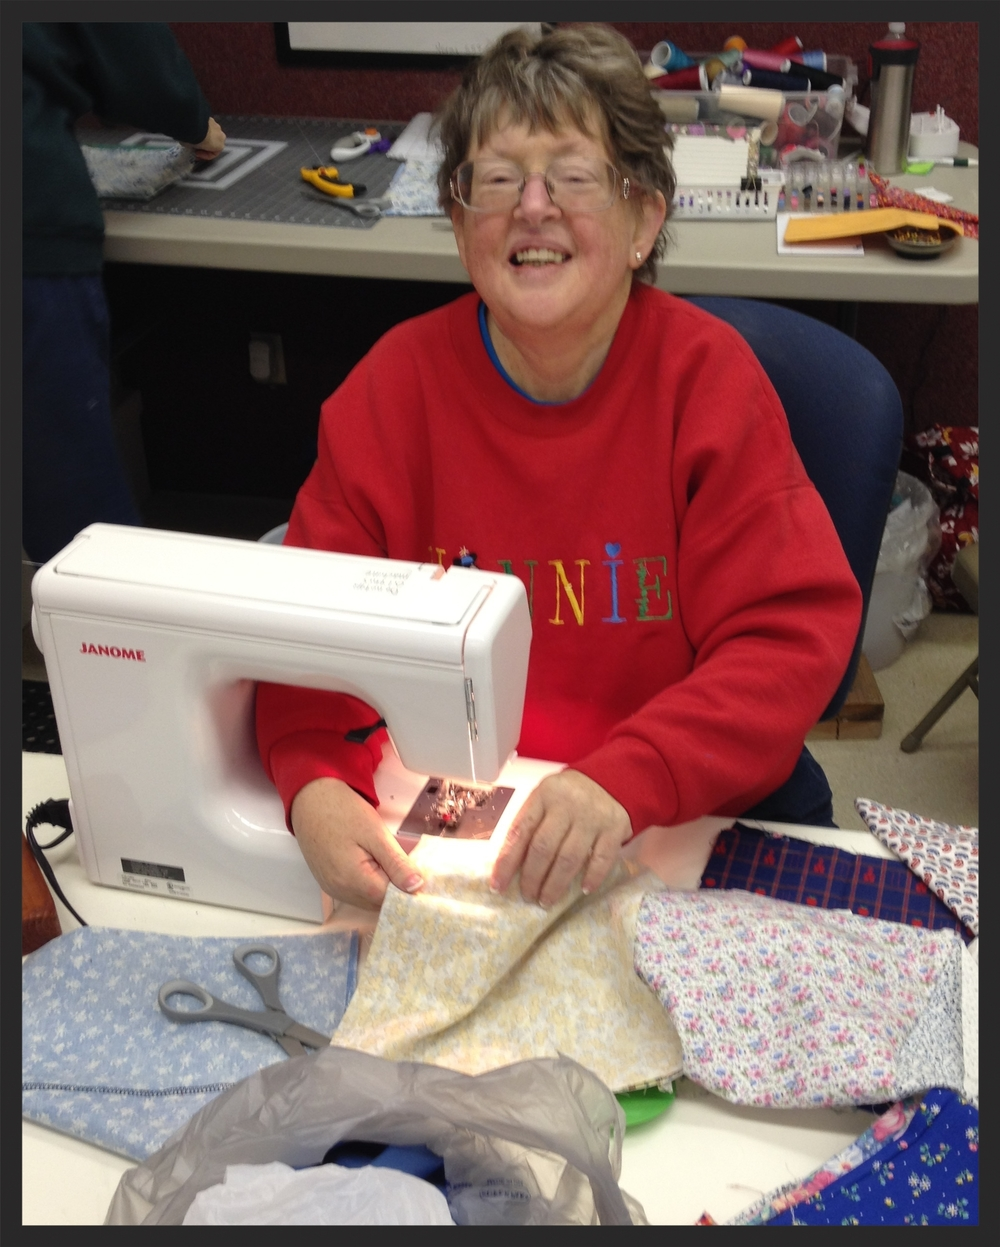 Robin Smith has joined YES! at Gleanings for eight consecutive years. She absolutely thrives in the quilt room!